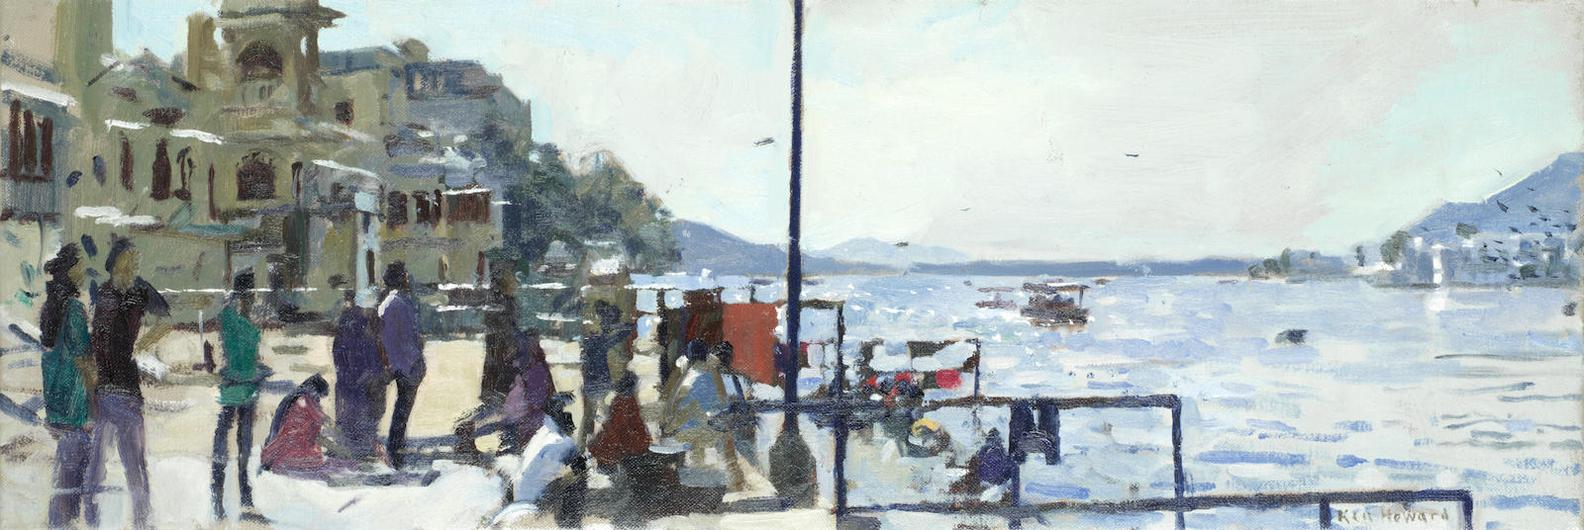 Ken Howard - Waiting At The Pier, Italy-